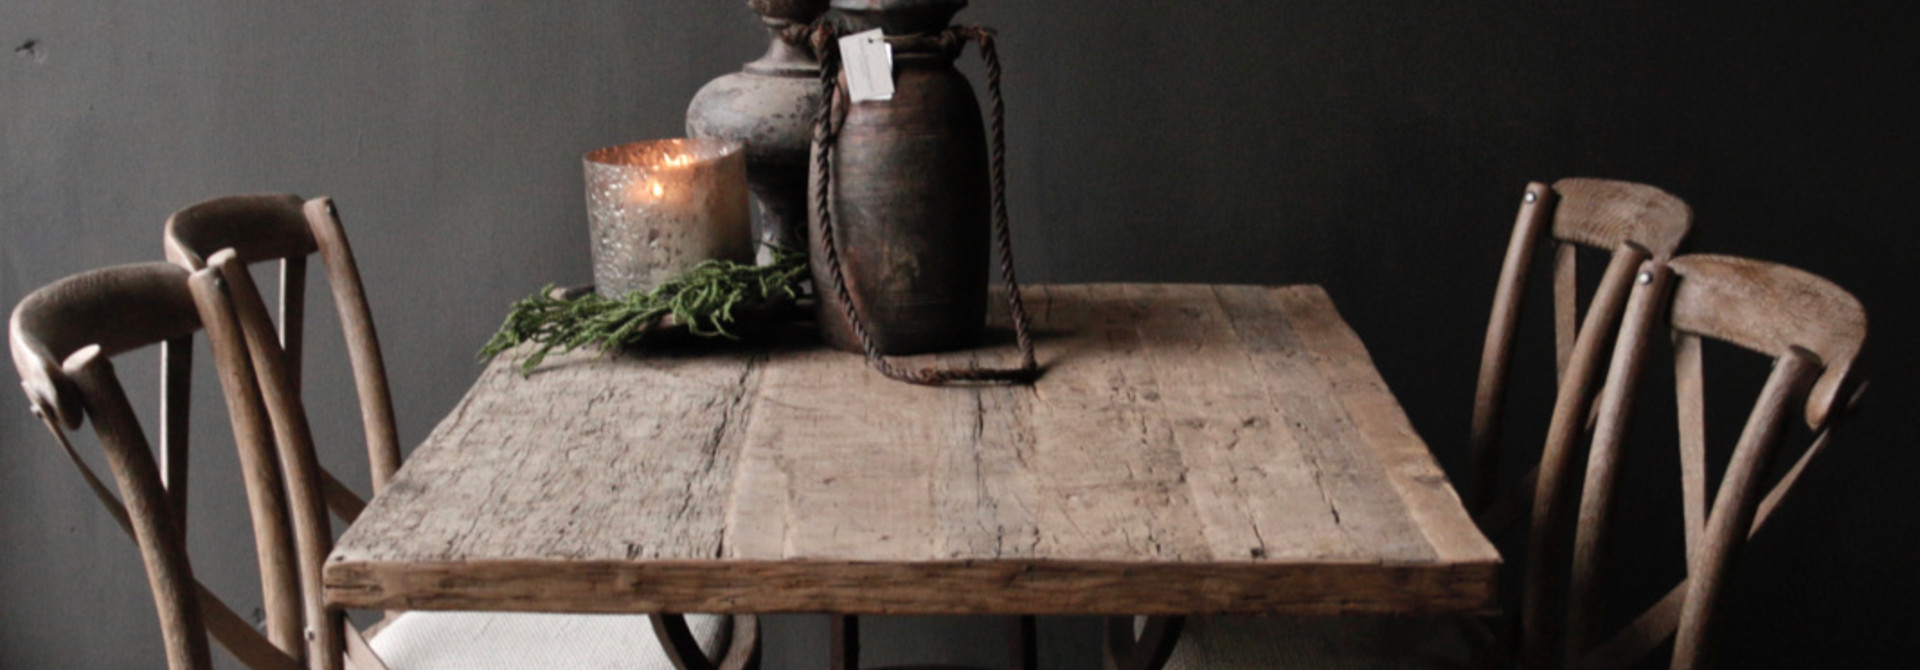 Loose old wooden table top